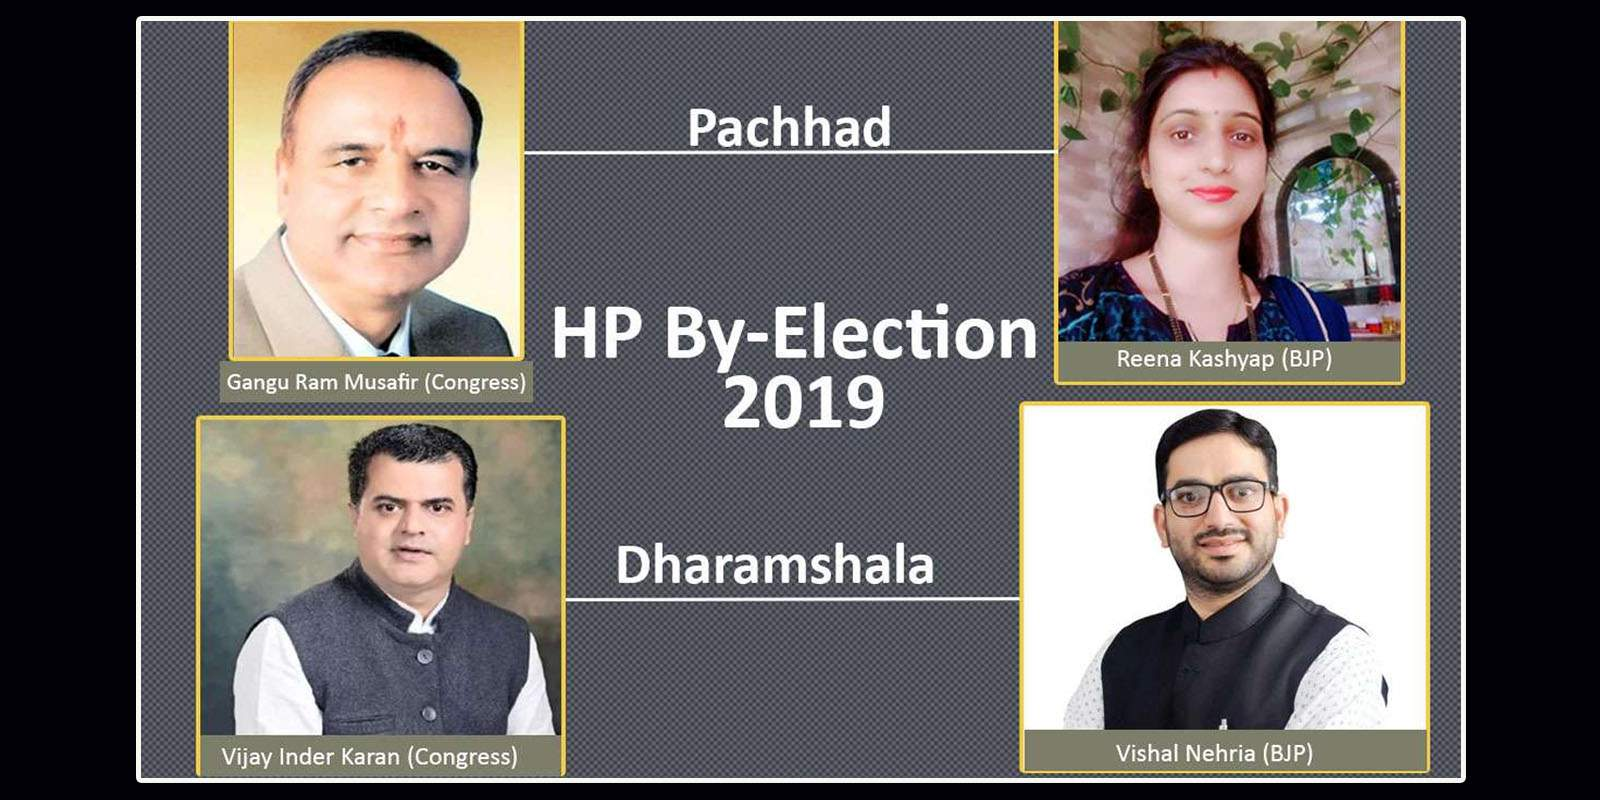 Detailed Hp by-election 2019 results